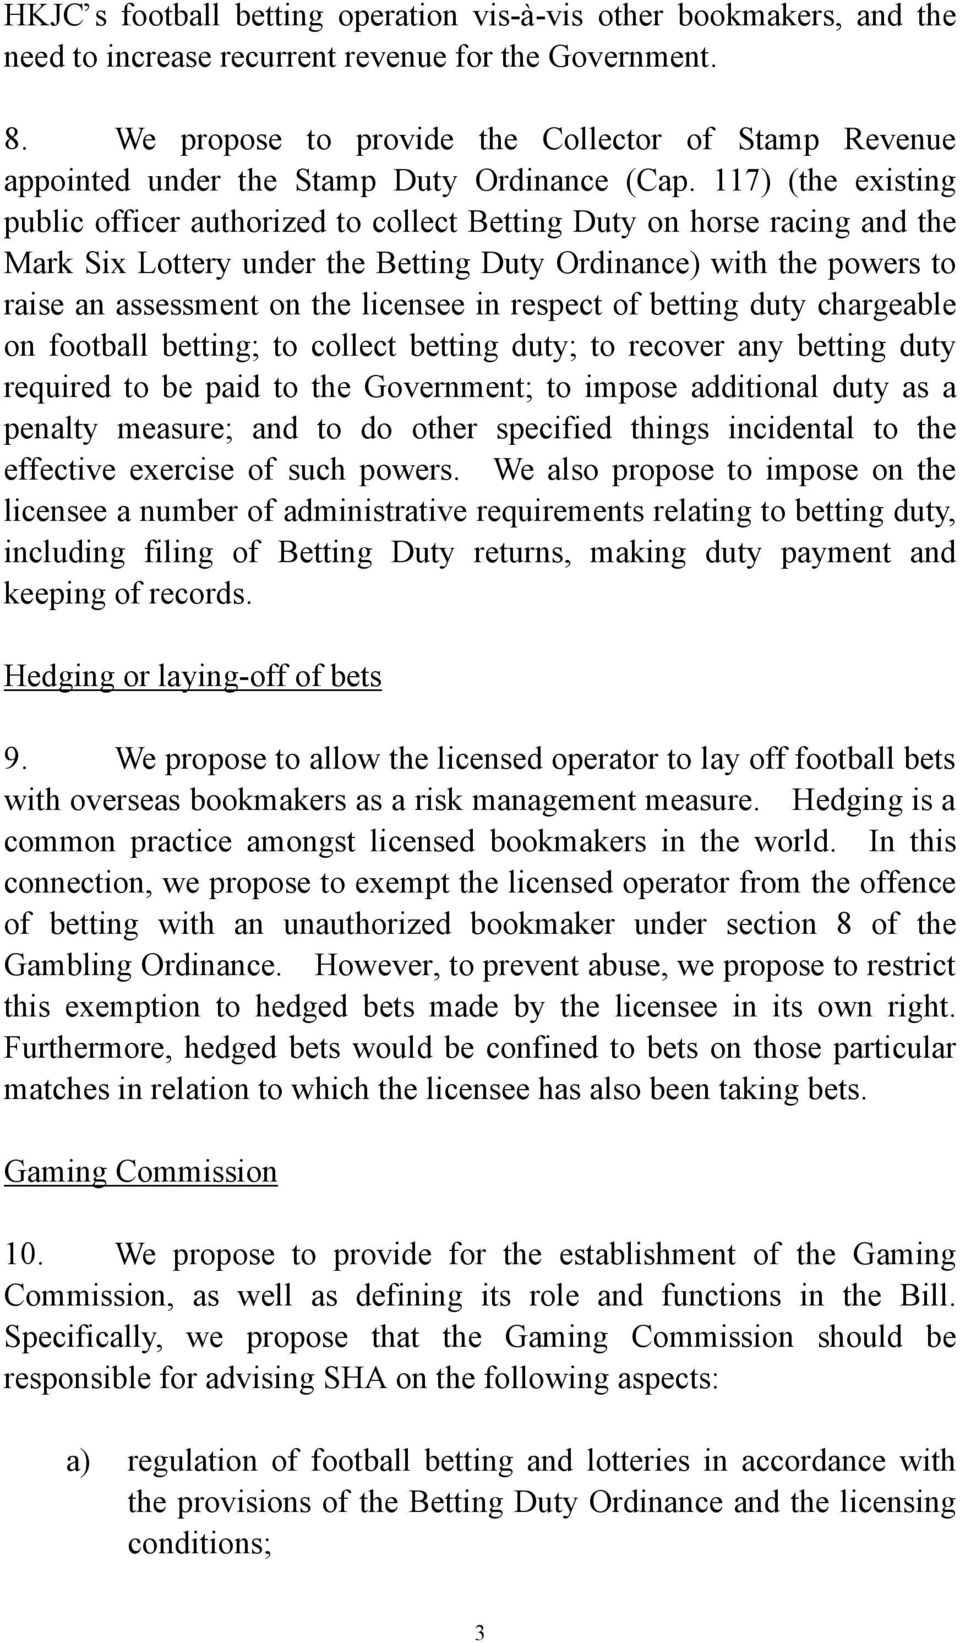 117) (the existing public officer authorized to collect Betting Duty on horse racing and the Mark Six Lottery under the Betting Duty Ordinance) with the powers to raise an assessment on the licensee